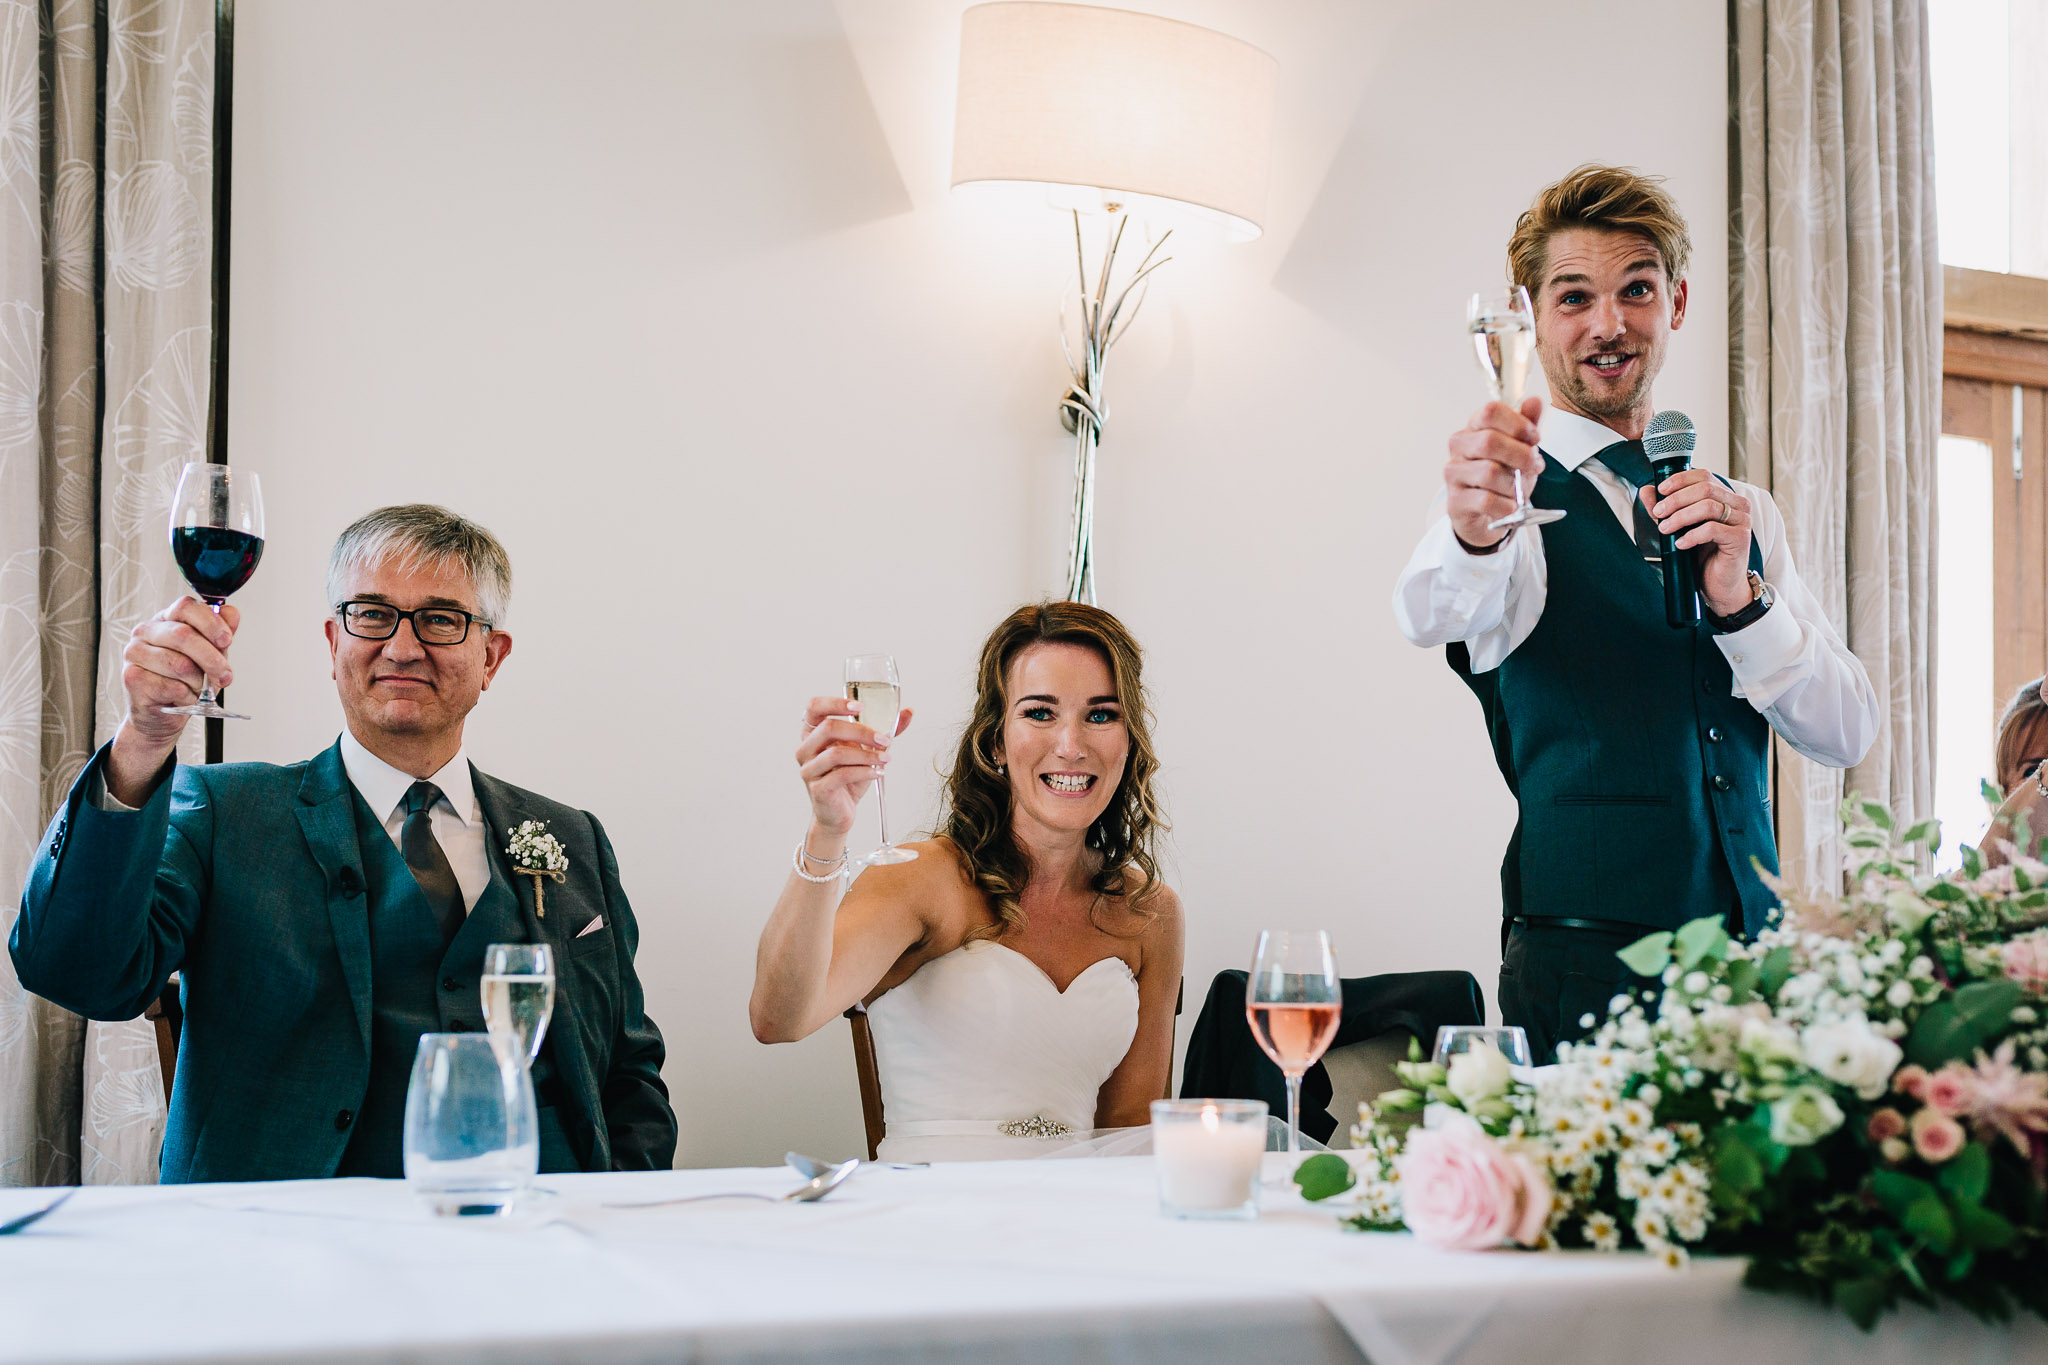 BRIDE AND GROOM TOASTING WITH CHAMPAGNE GLASSES CHEERS